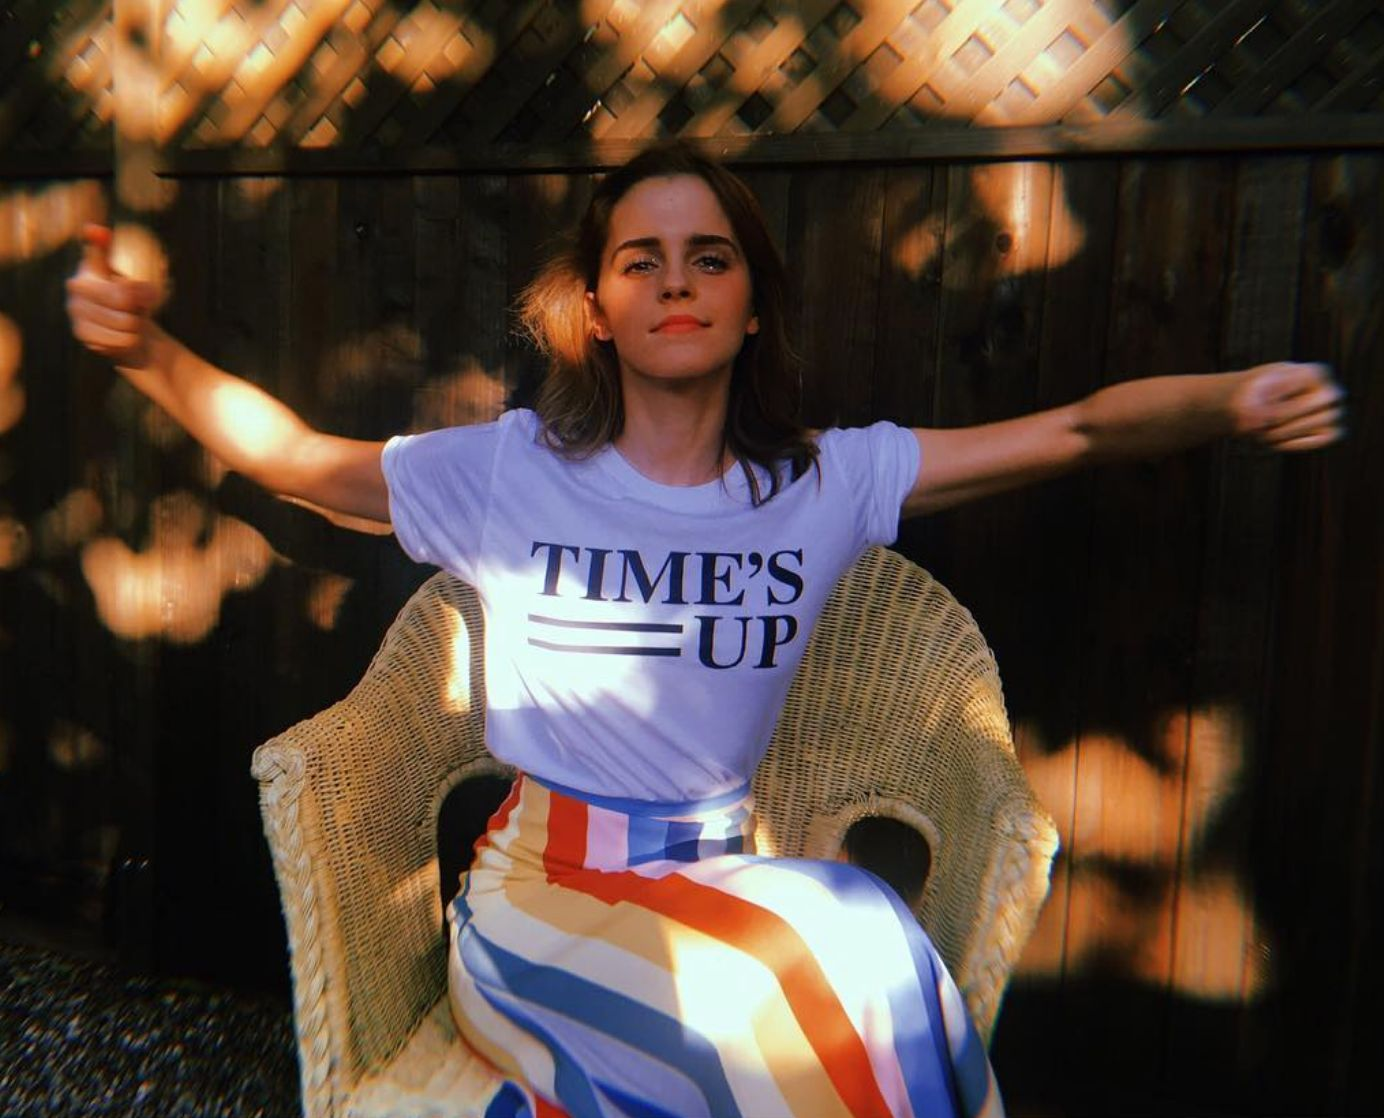 Emma Watson Reflects On Time's Up Movement's Impact A Year On From Its